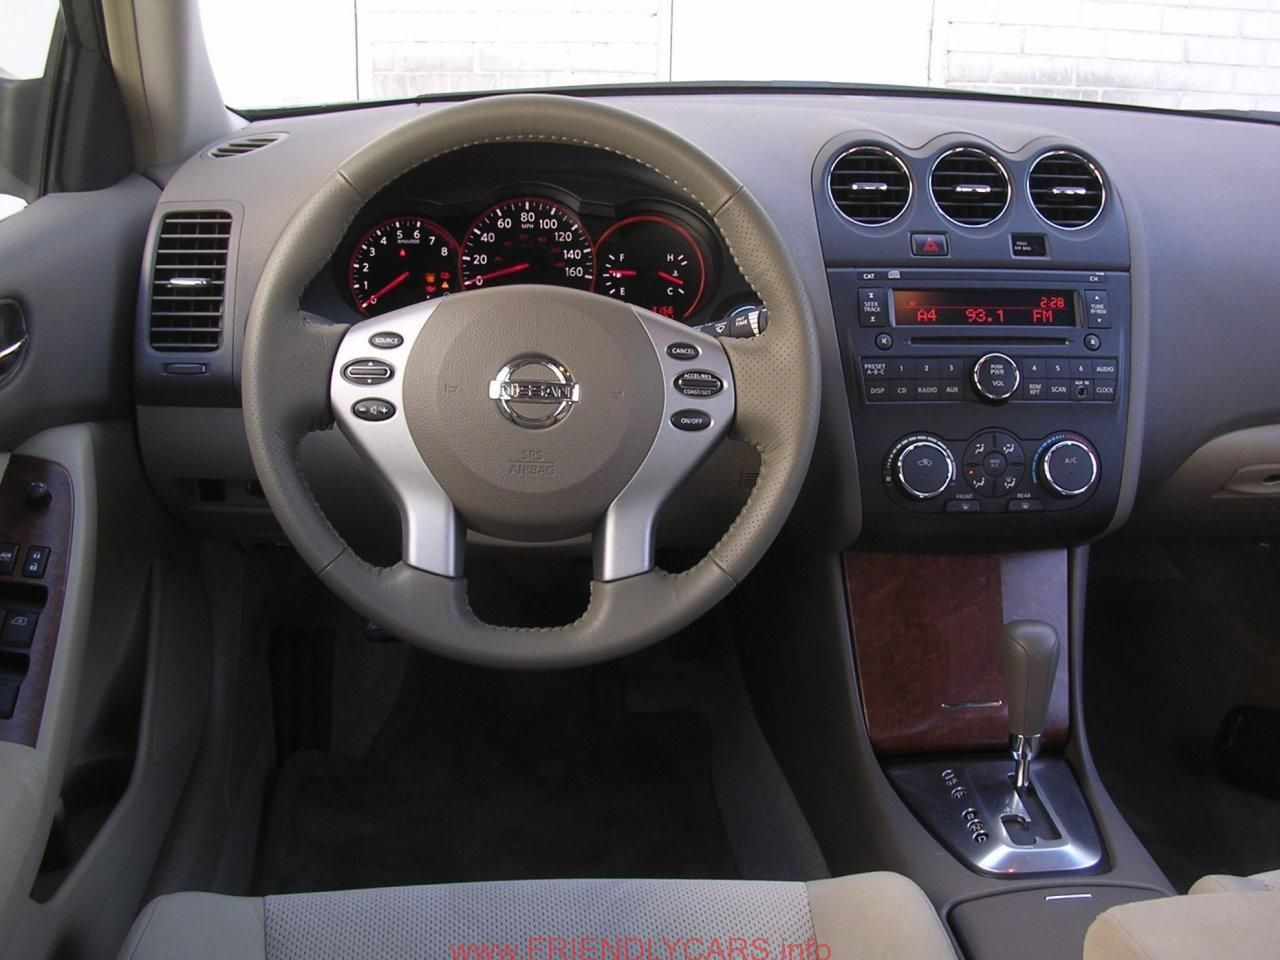 Cool nissan altima 2003 interior car images hd frost interior 2003 cool nissan altima 2011 interior car images hd 1958 datsun 1000 sedan brochure source john lloyd vanachro Gallery